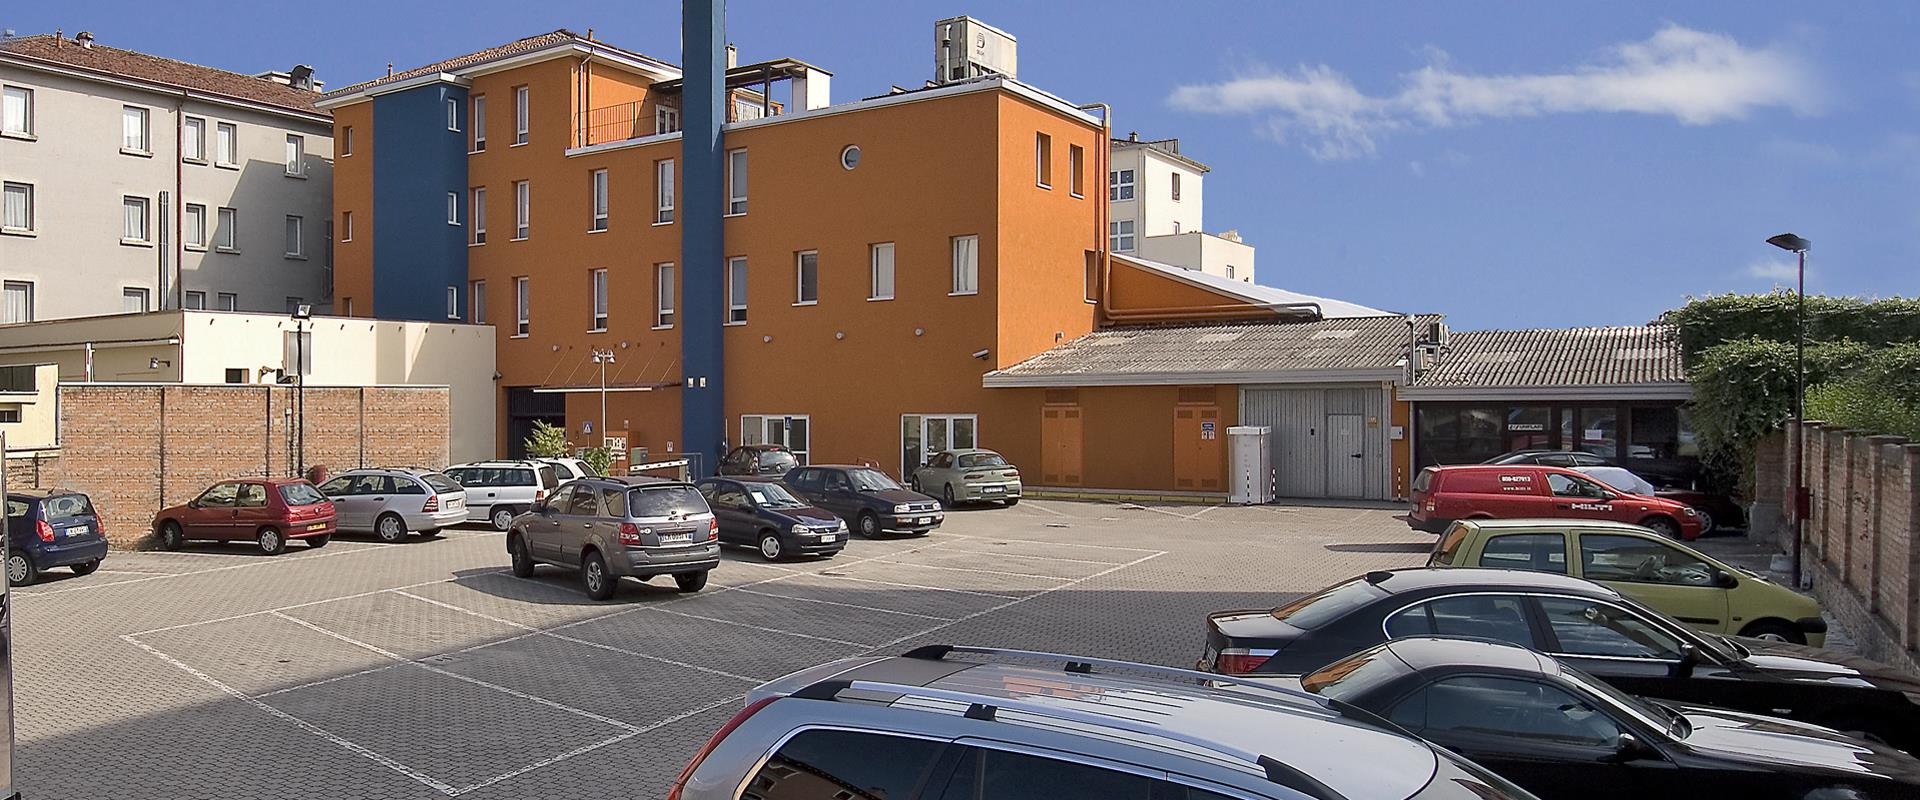 Forget the car and move to Venice in freedom! Parking at the Best Western Hotel Bologna in Mestre is under video surveillance.